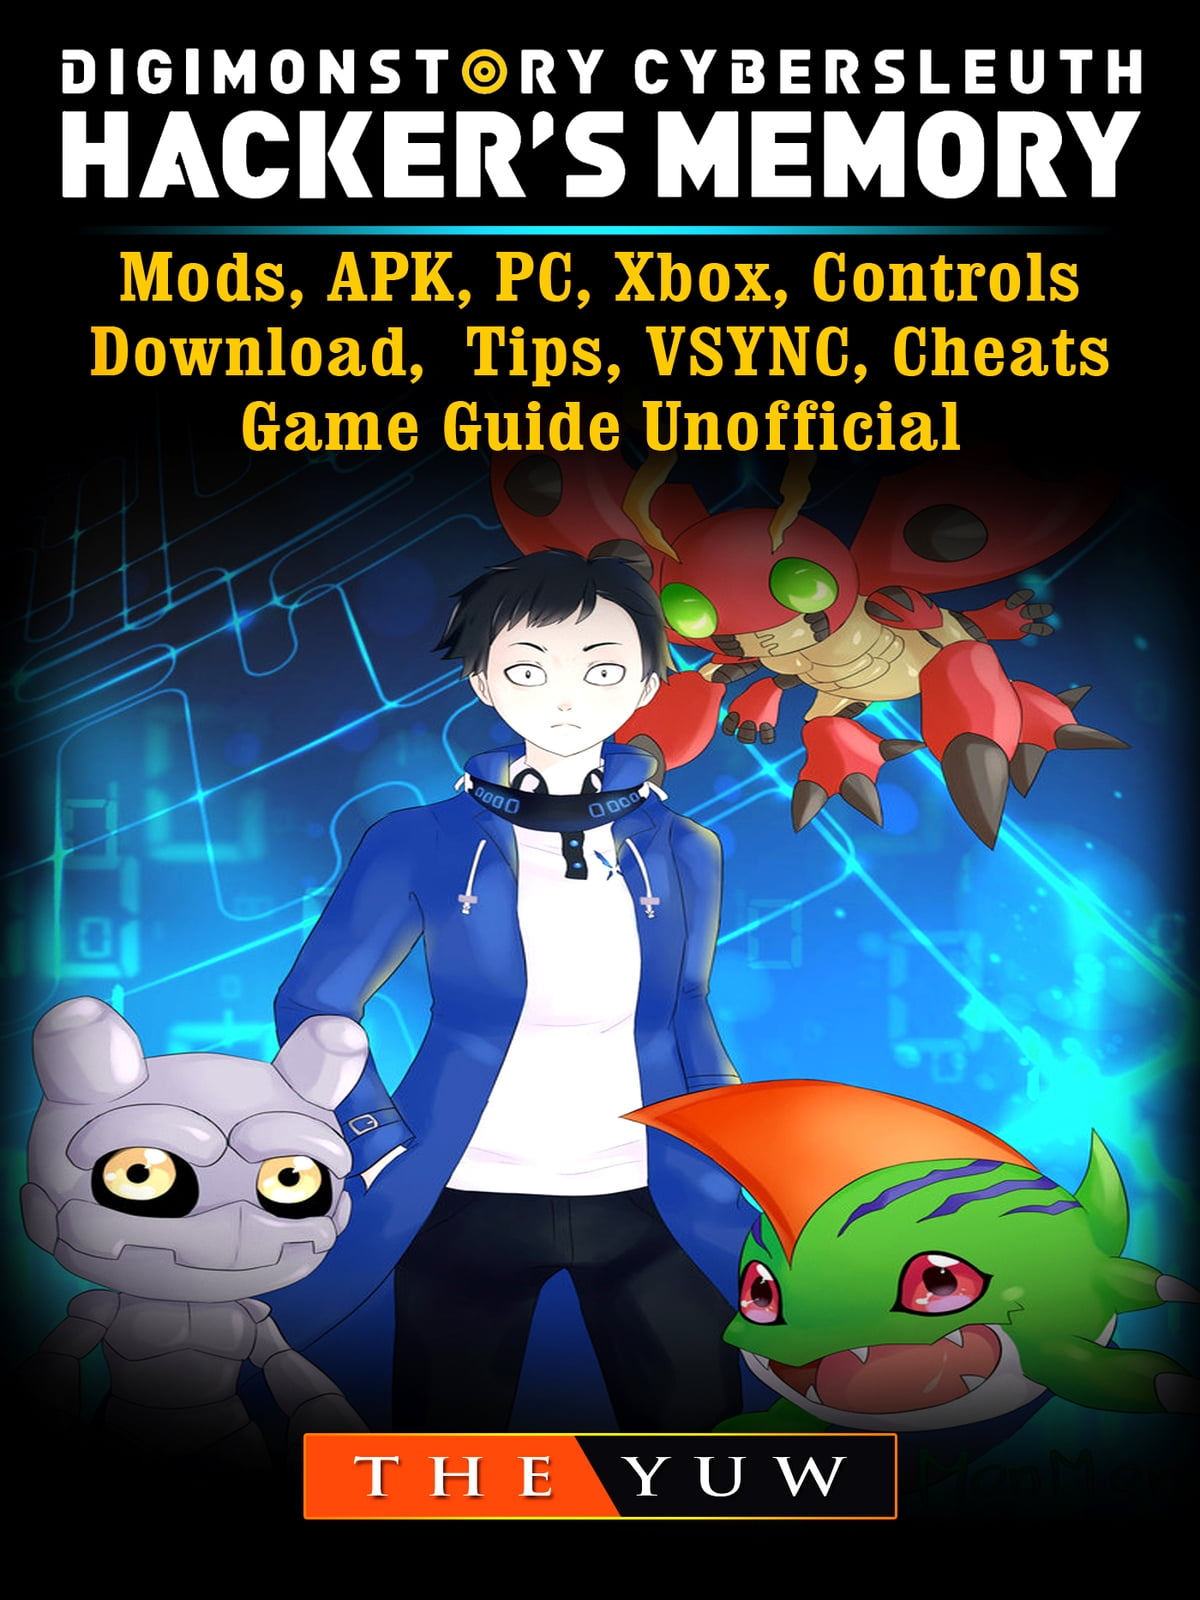 Digimon story cyber sleuth hackers memory, mods, apk, pc, xbox.